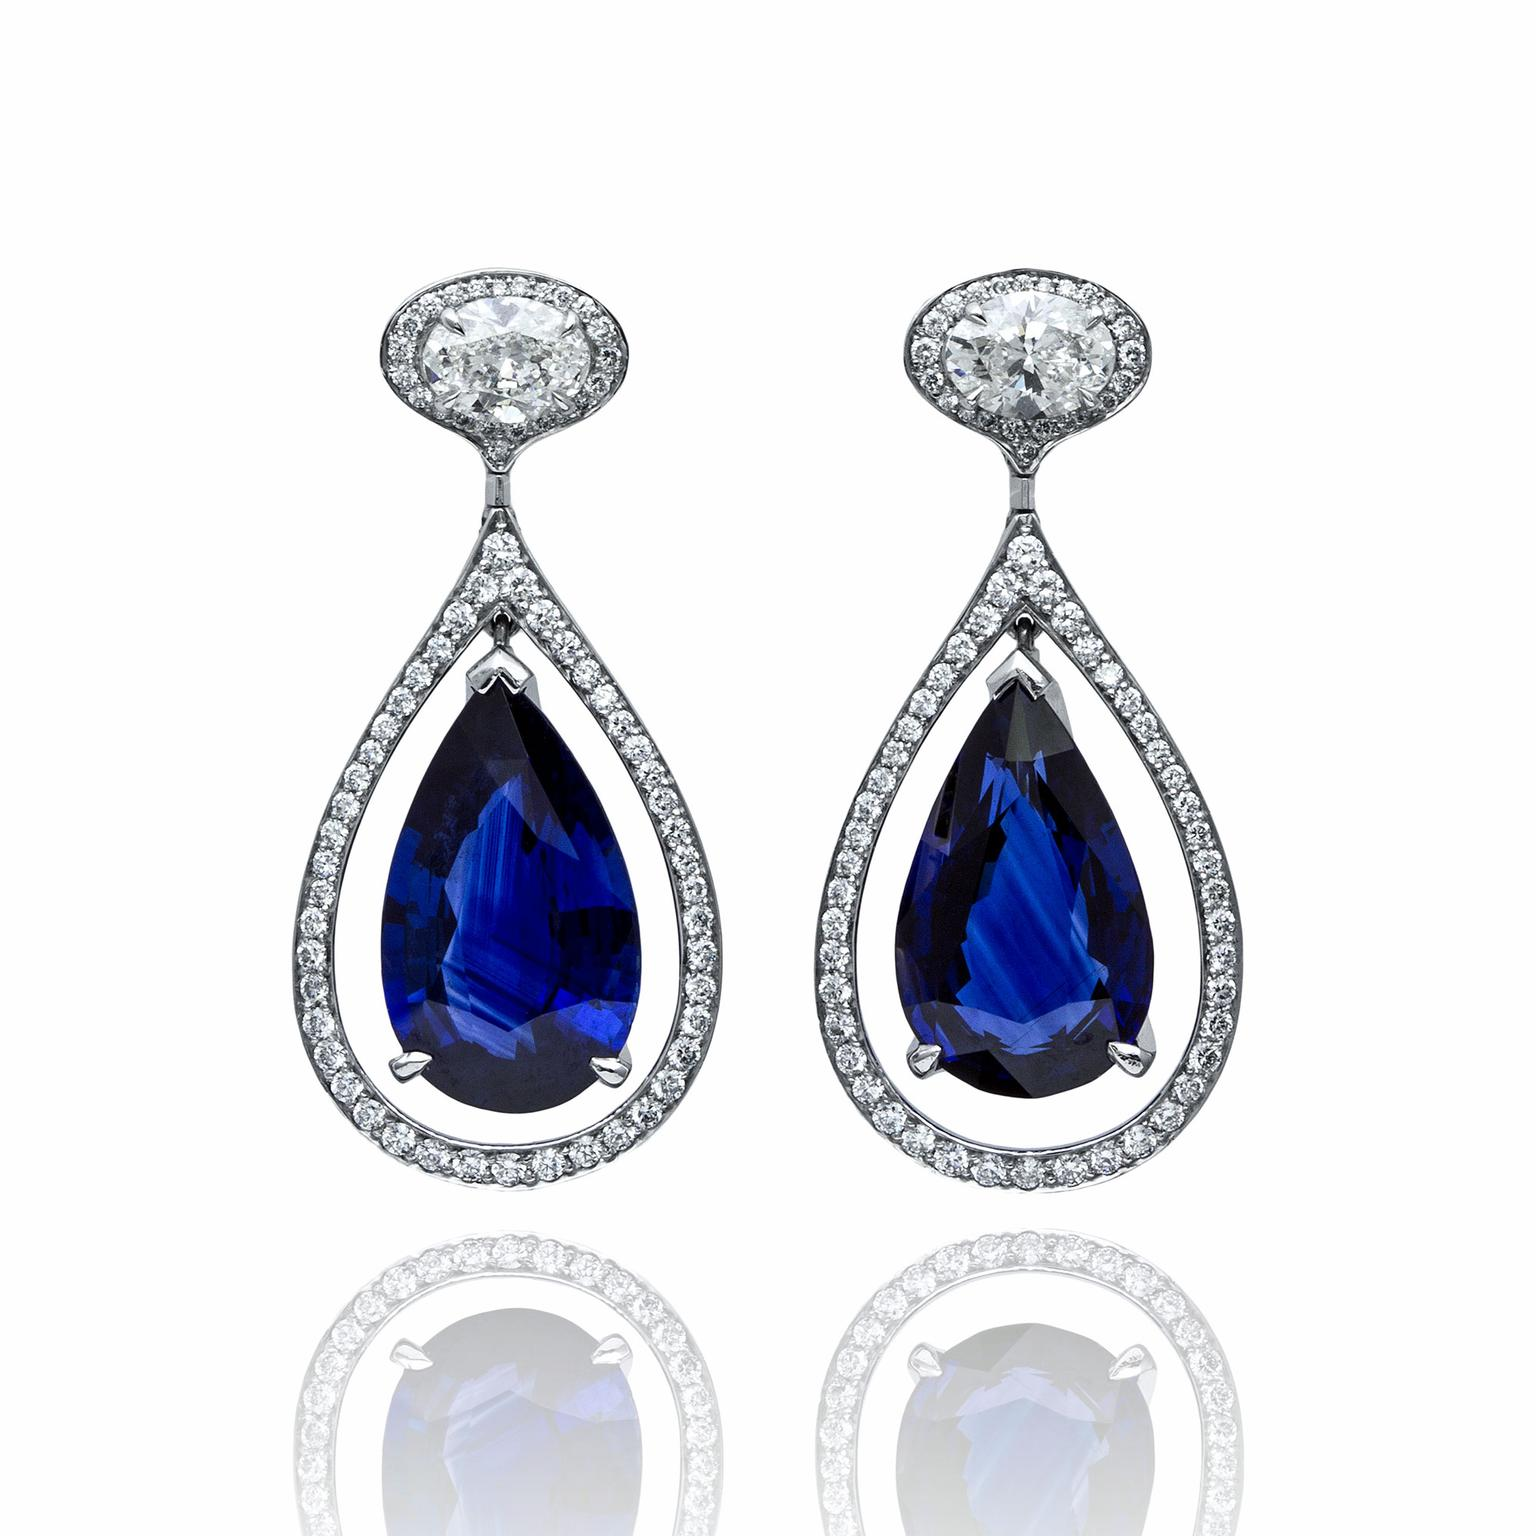 Boodles platinum and diamond earrings